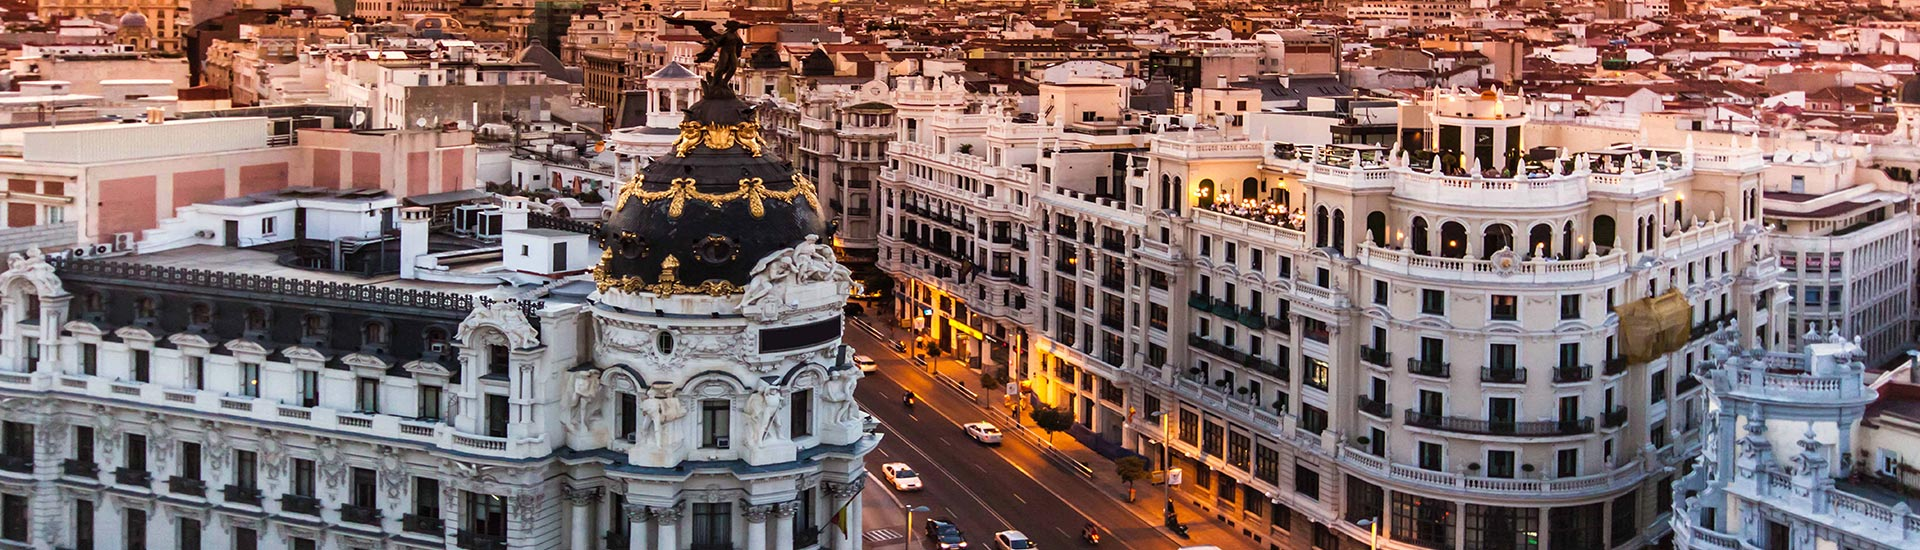 madrid header